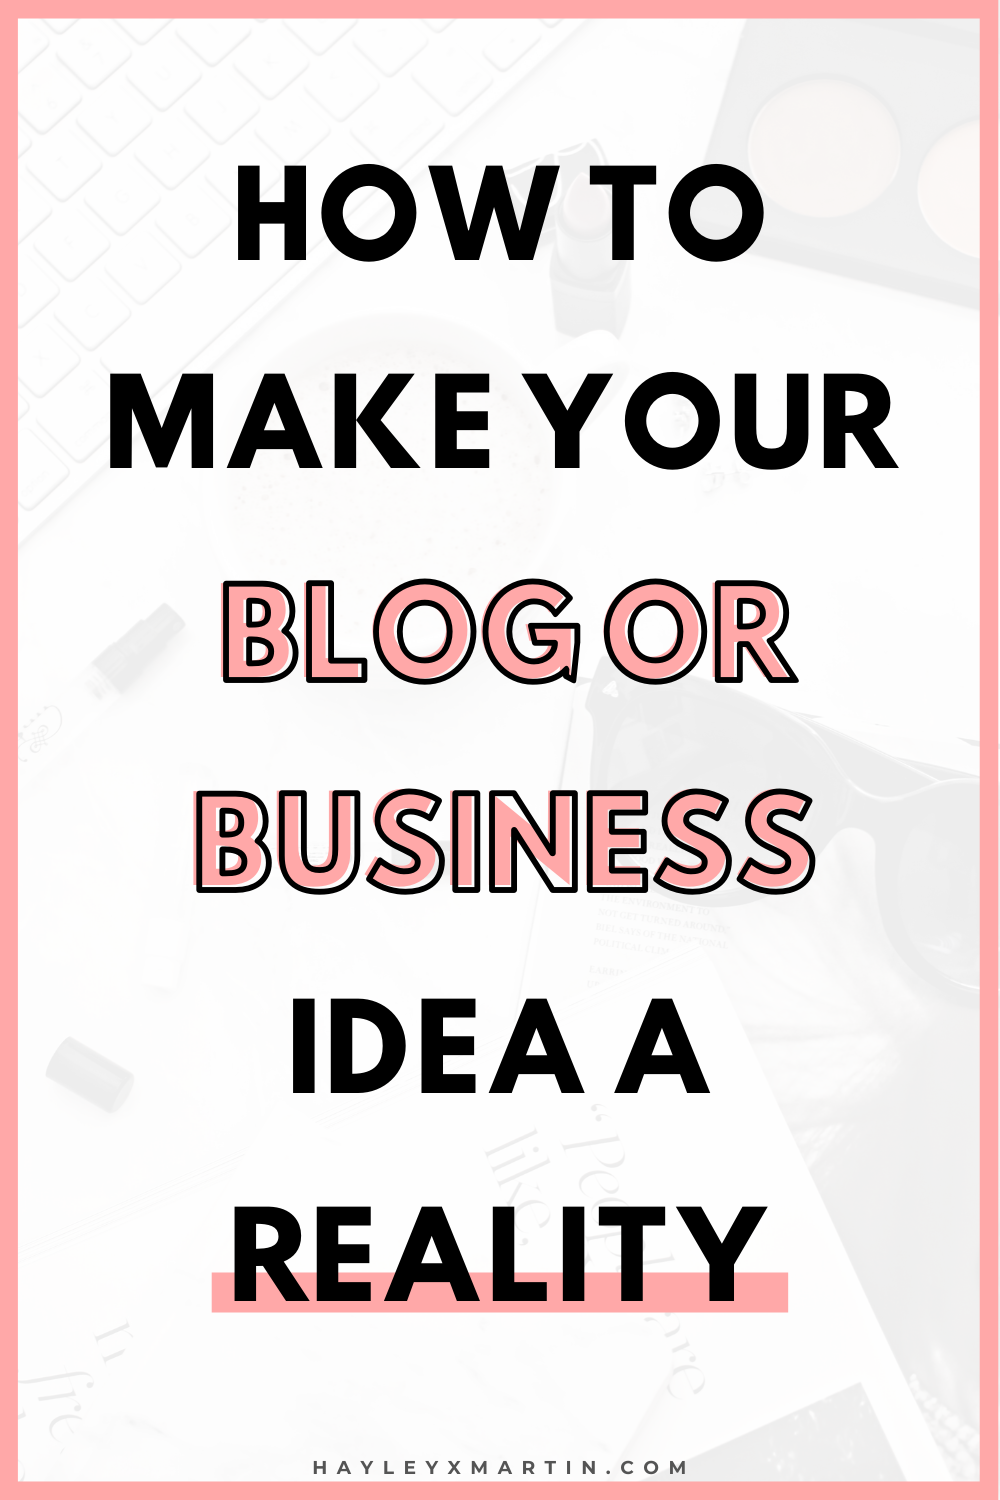 HOW TO MAKE YOUR BLOG OR BUSINESS IDEA A REALITY | HAYLEYXMARTIN